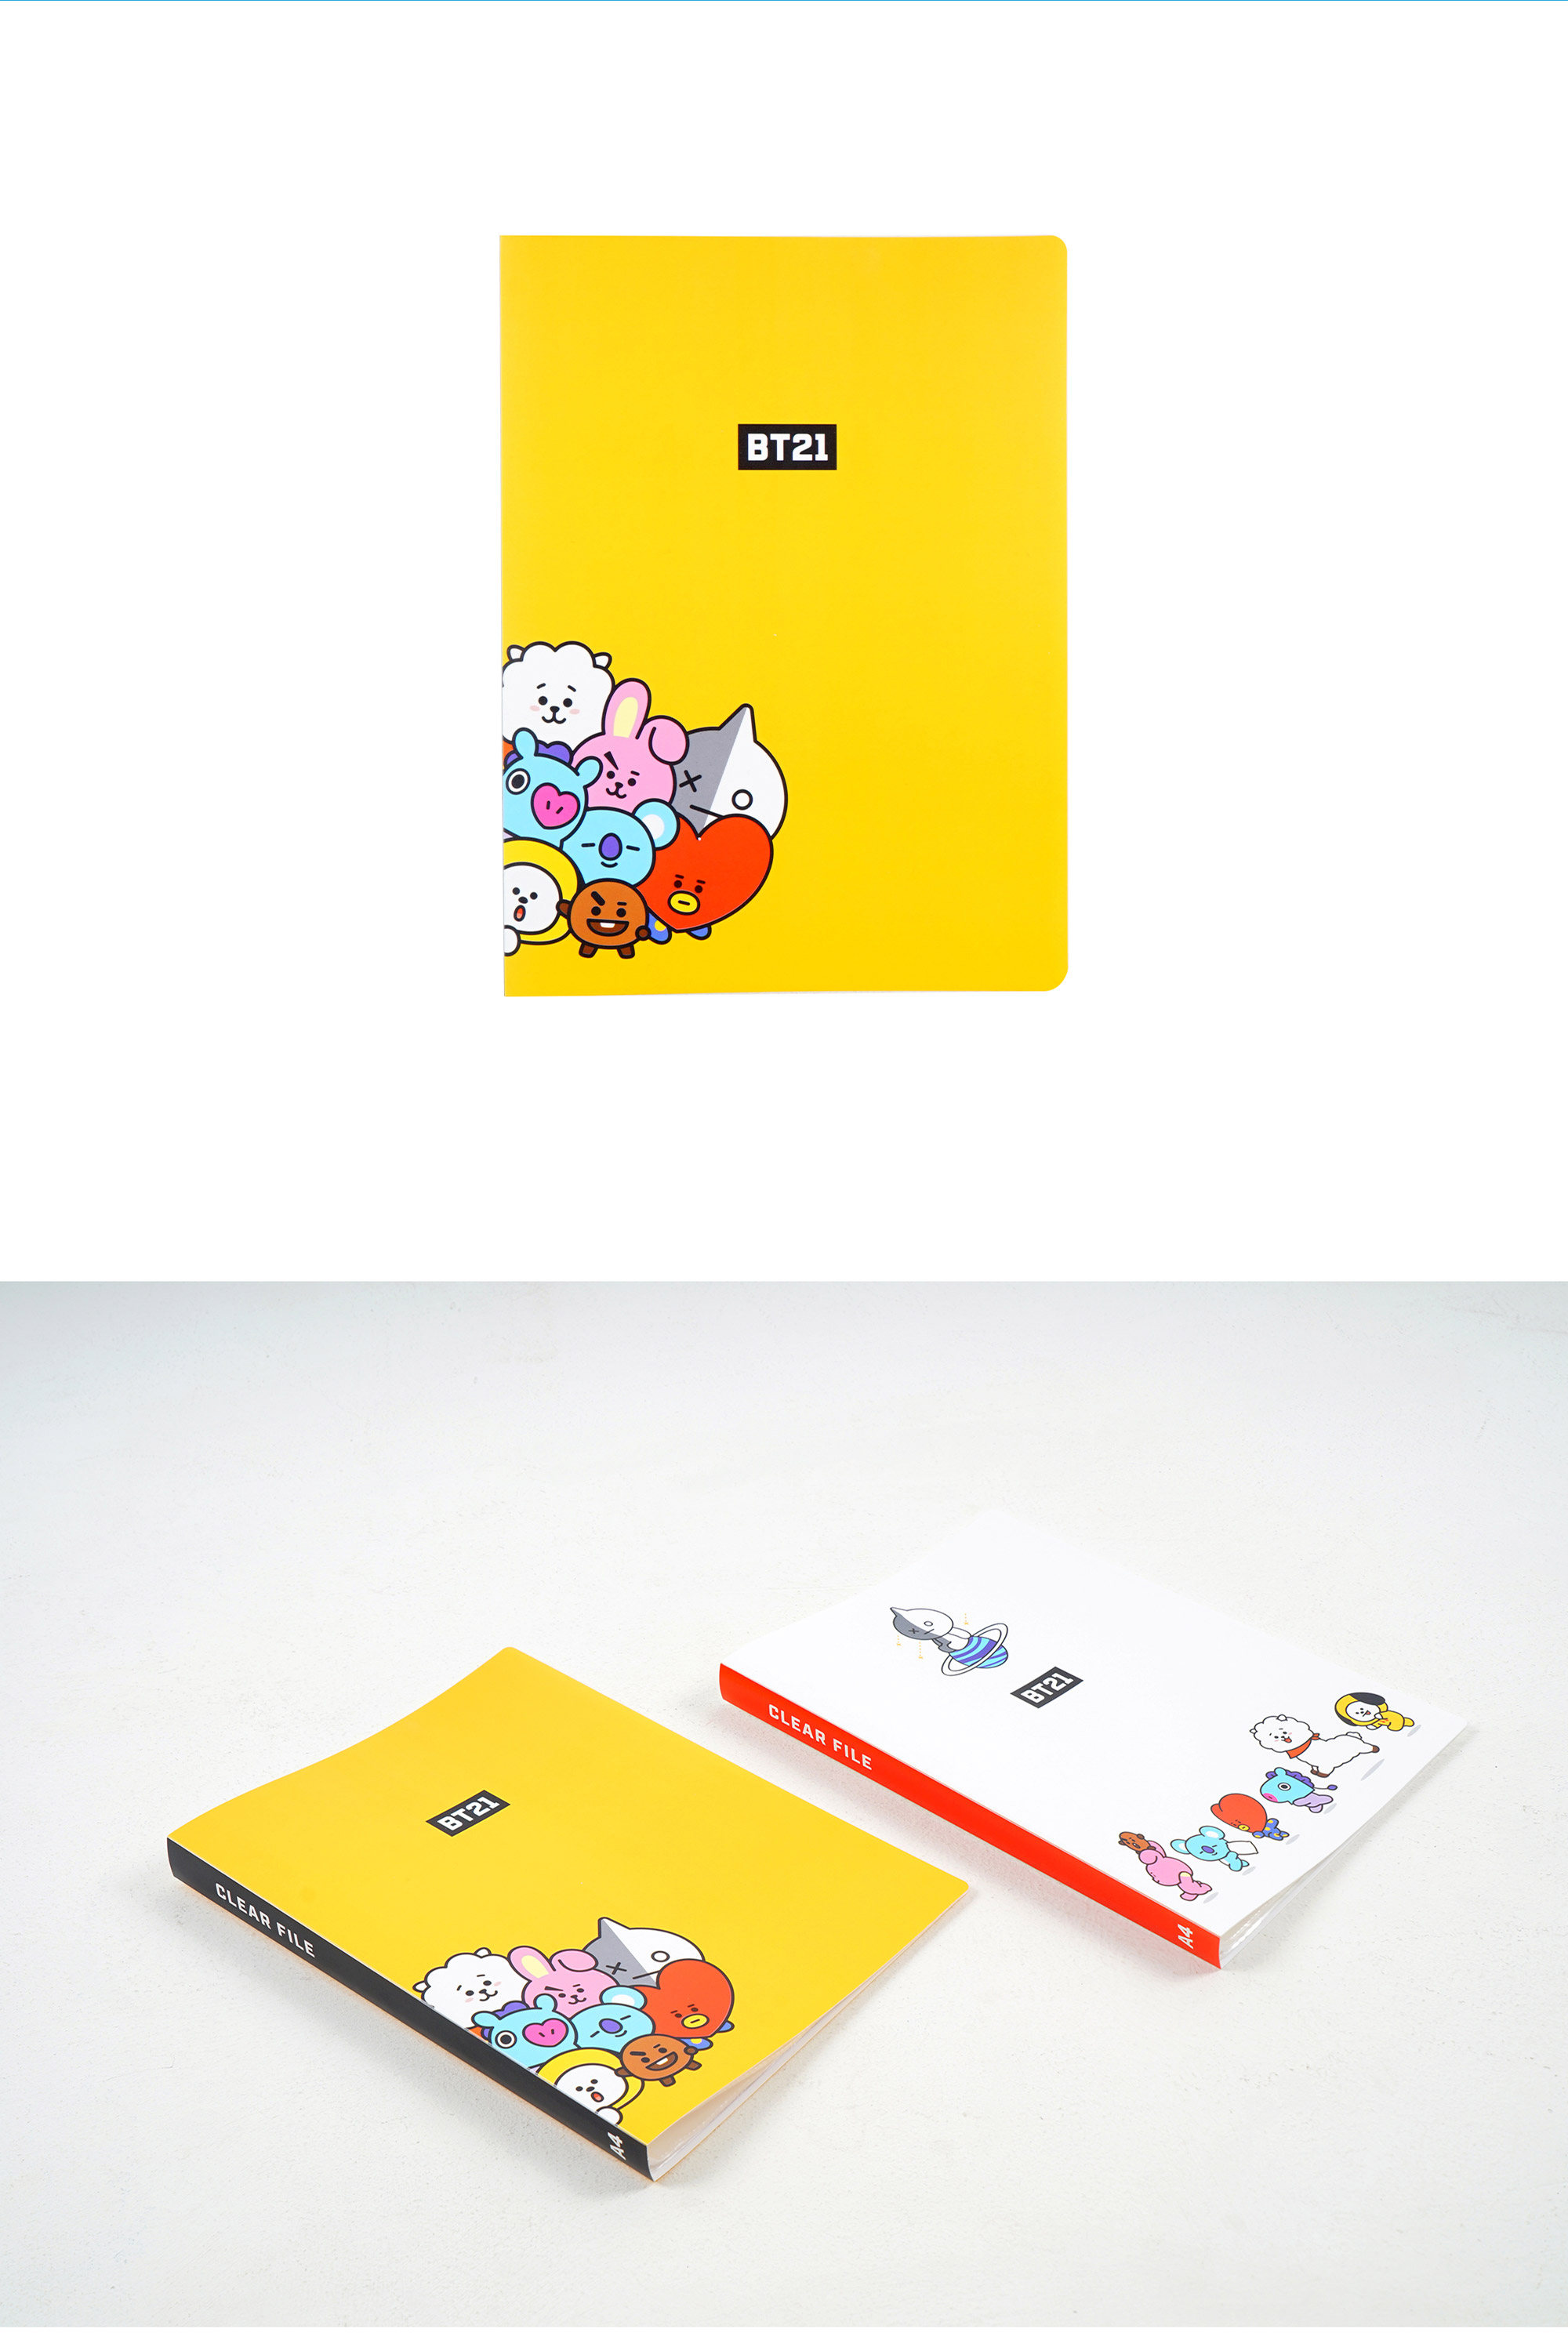 bt21_clearfile_01.jpg